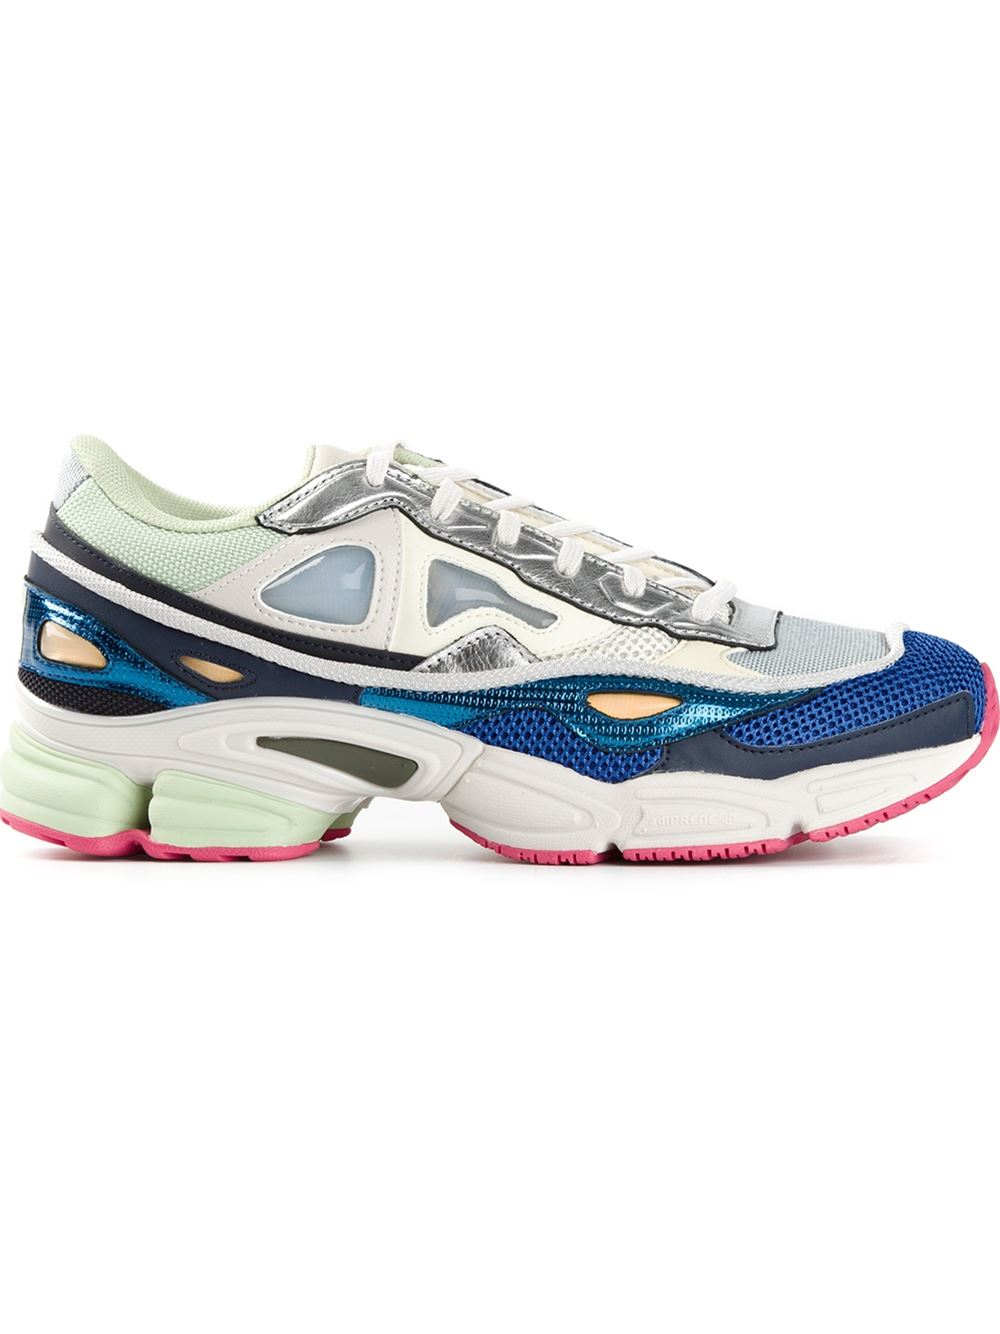 adidas by raf simons ozweego sneakers in blue for men lyst. Black Bedroom Furniture Sets. Home Design Ideas